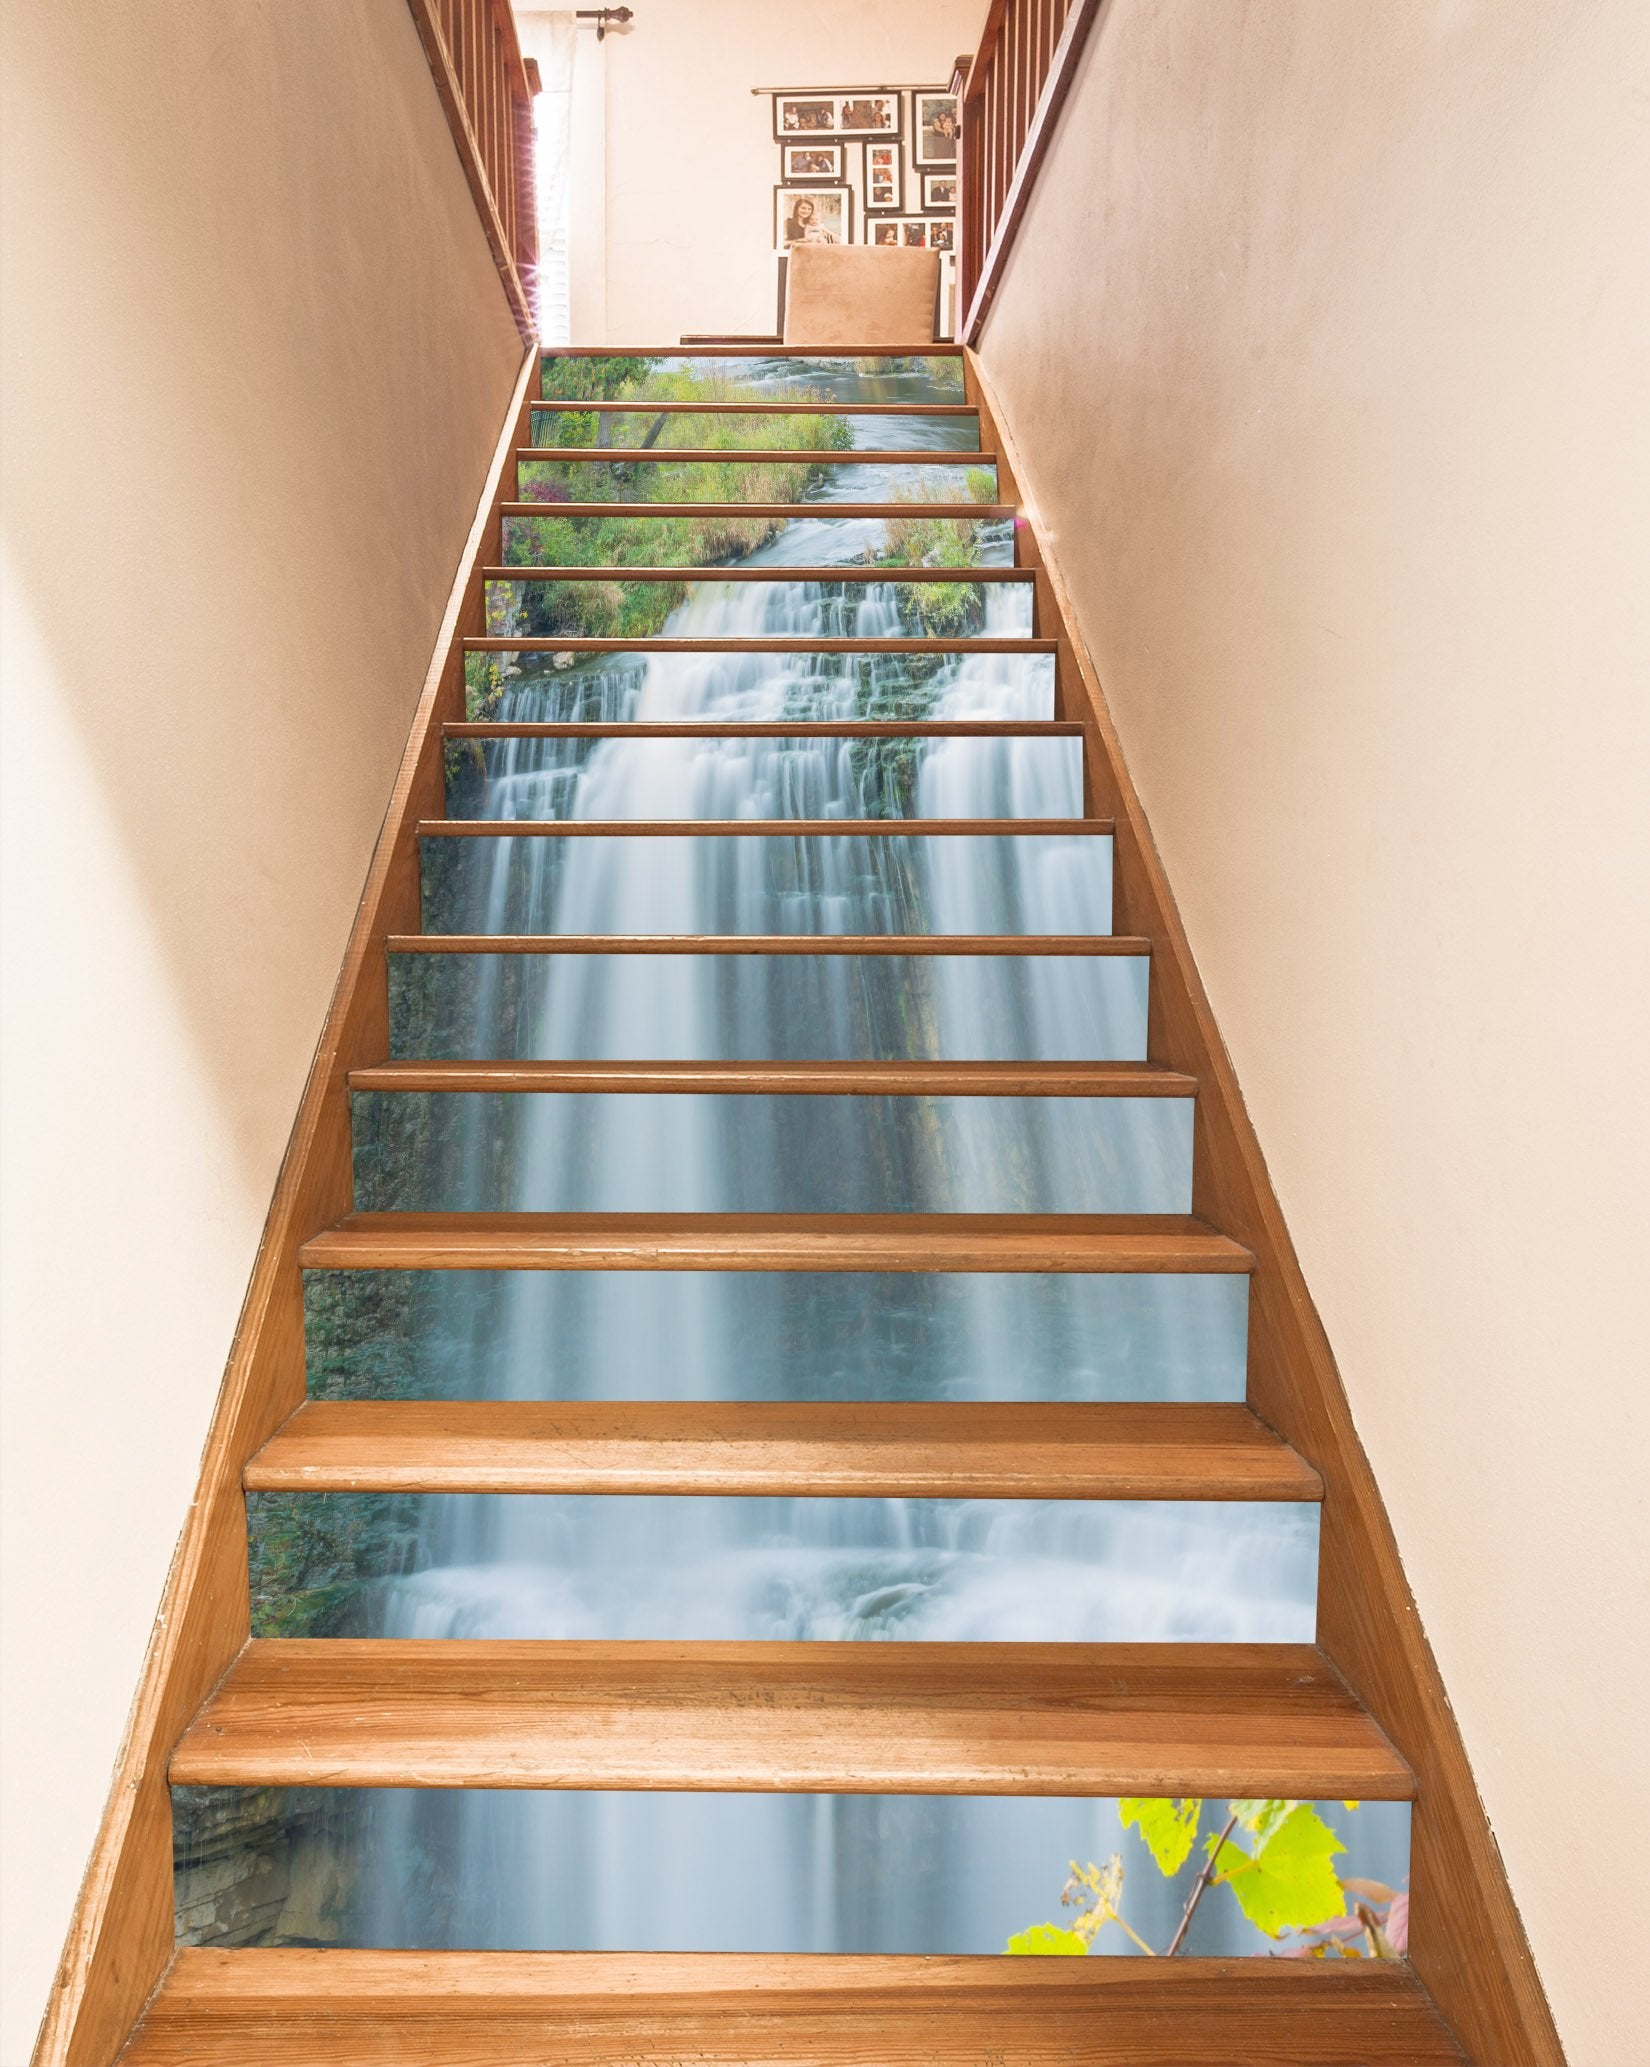 3D River Waterfalls 1597 Stair Risers